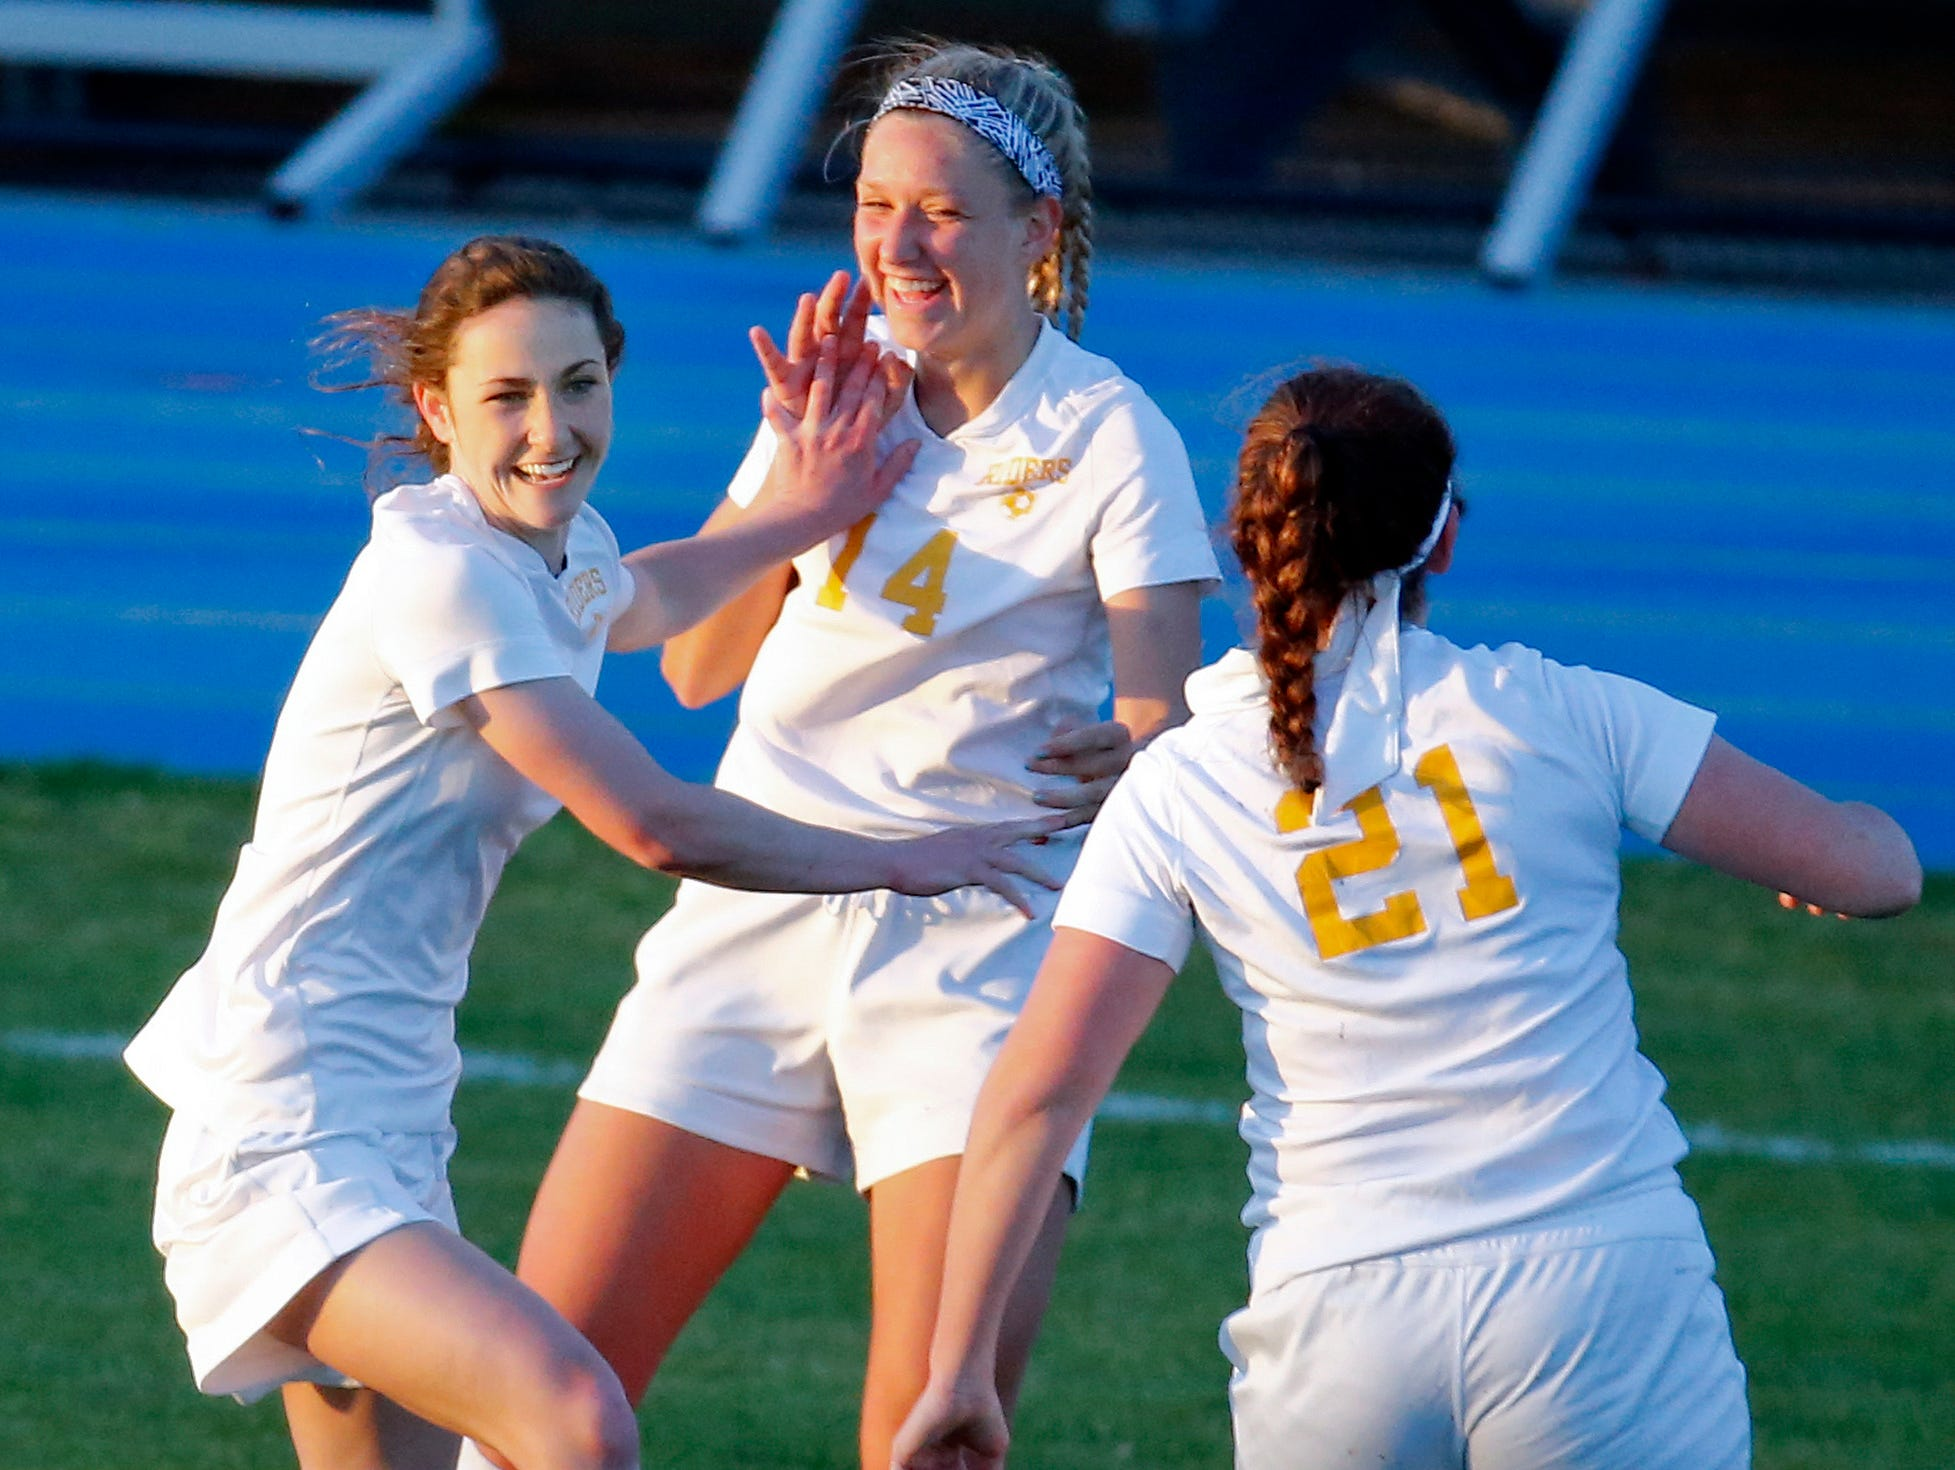 Caesar Rodney's (from left) Aleya Cummings, Kimberly Glasser and Victoria Sebastian celebrate the Riders' go-ahead goal in the second half of their 2-1 win at Caesar Rodney High School Friday. Cummings netted both goals for Caesar Rodney.